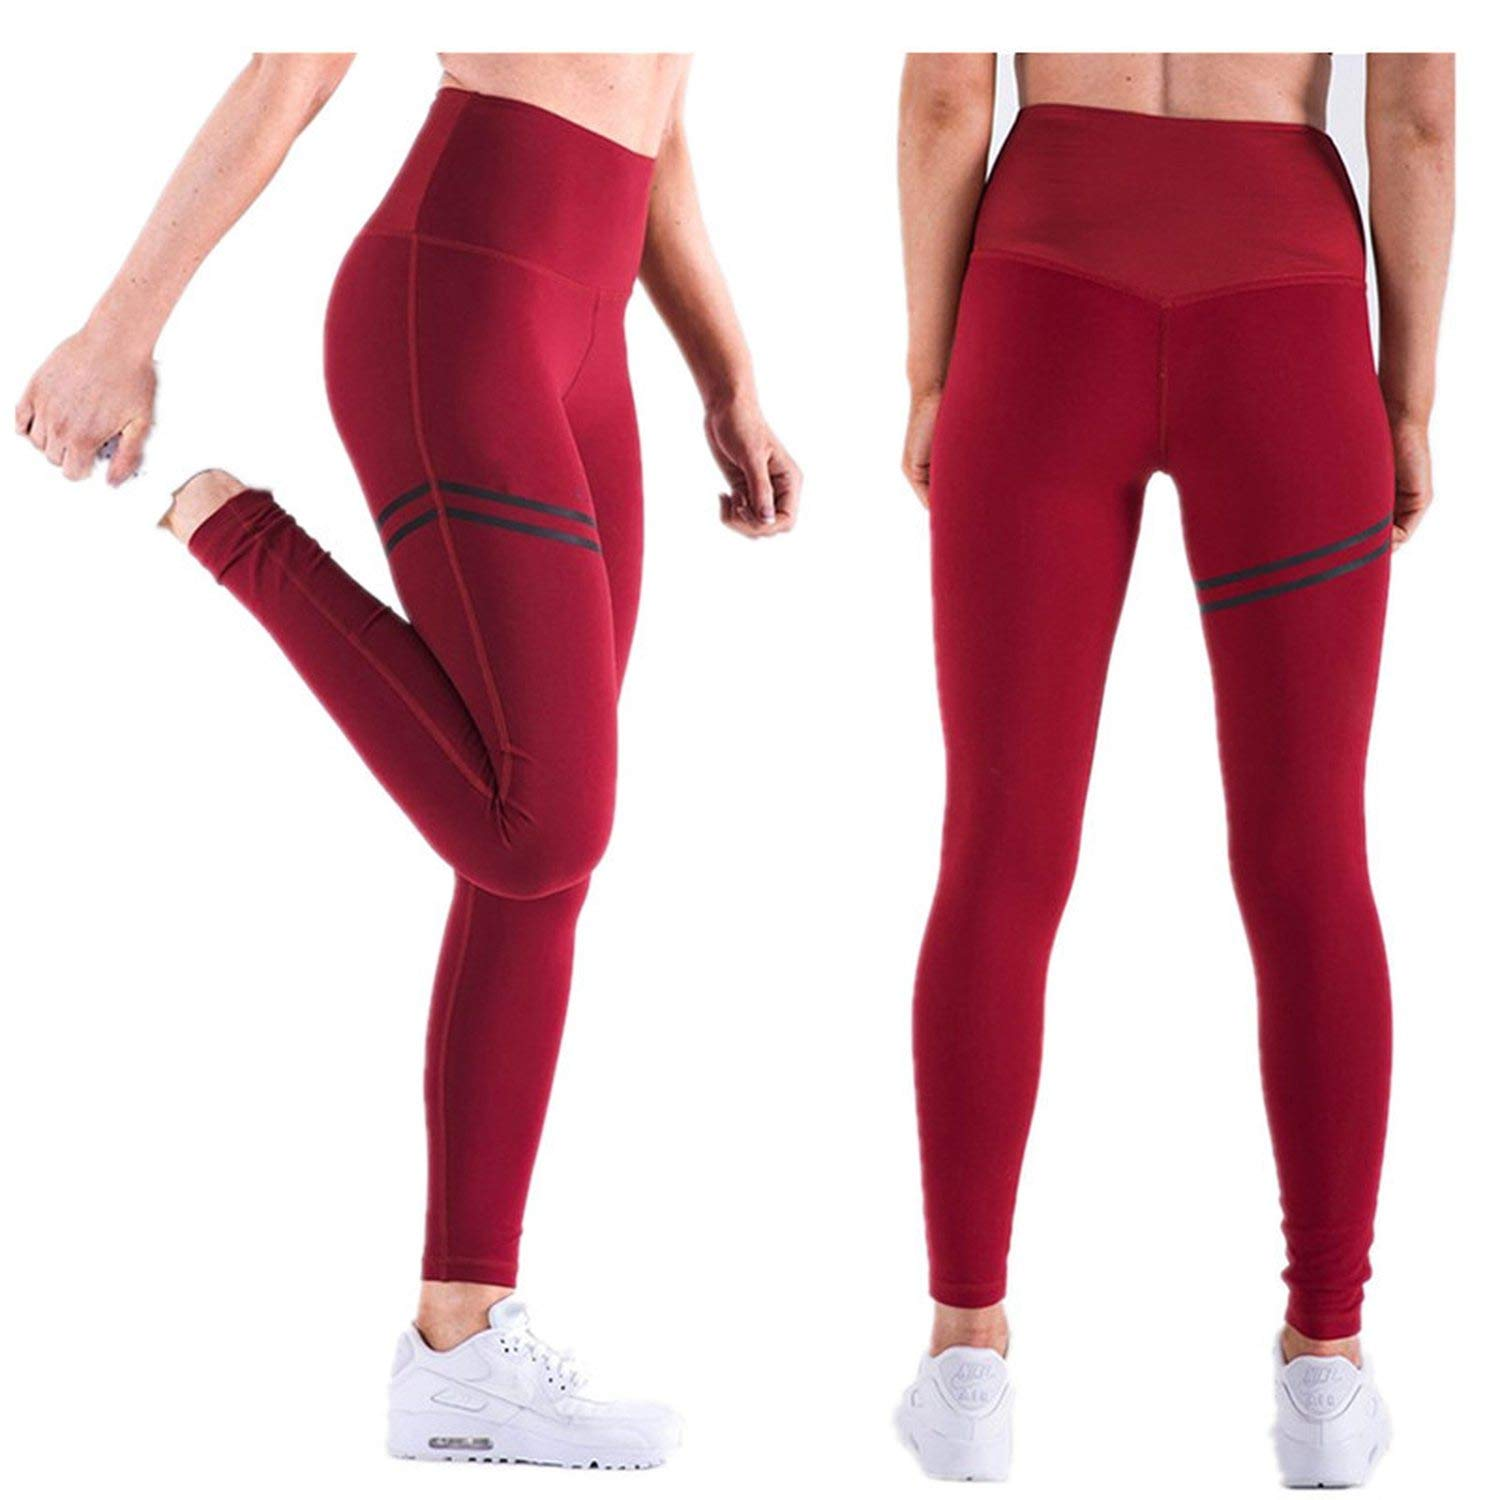 Amazon.com: Get-in Push Up Yoga Pants Women High Waist ...